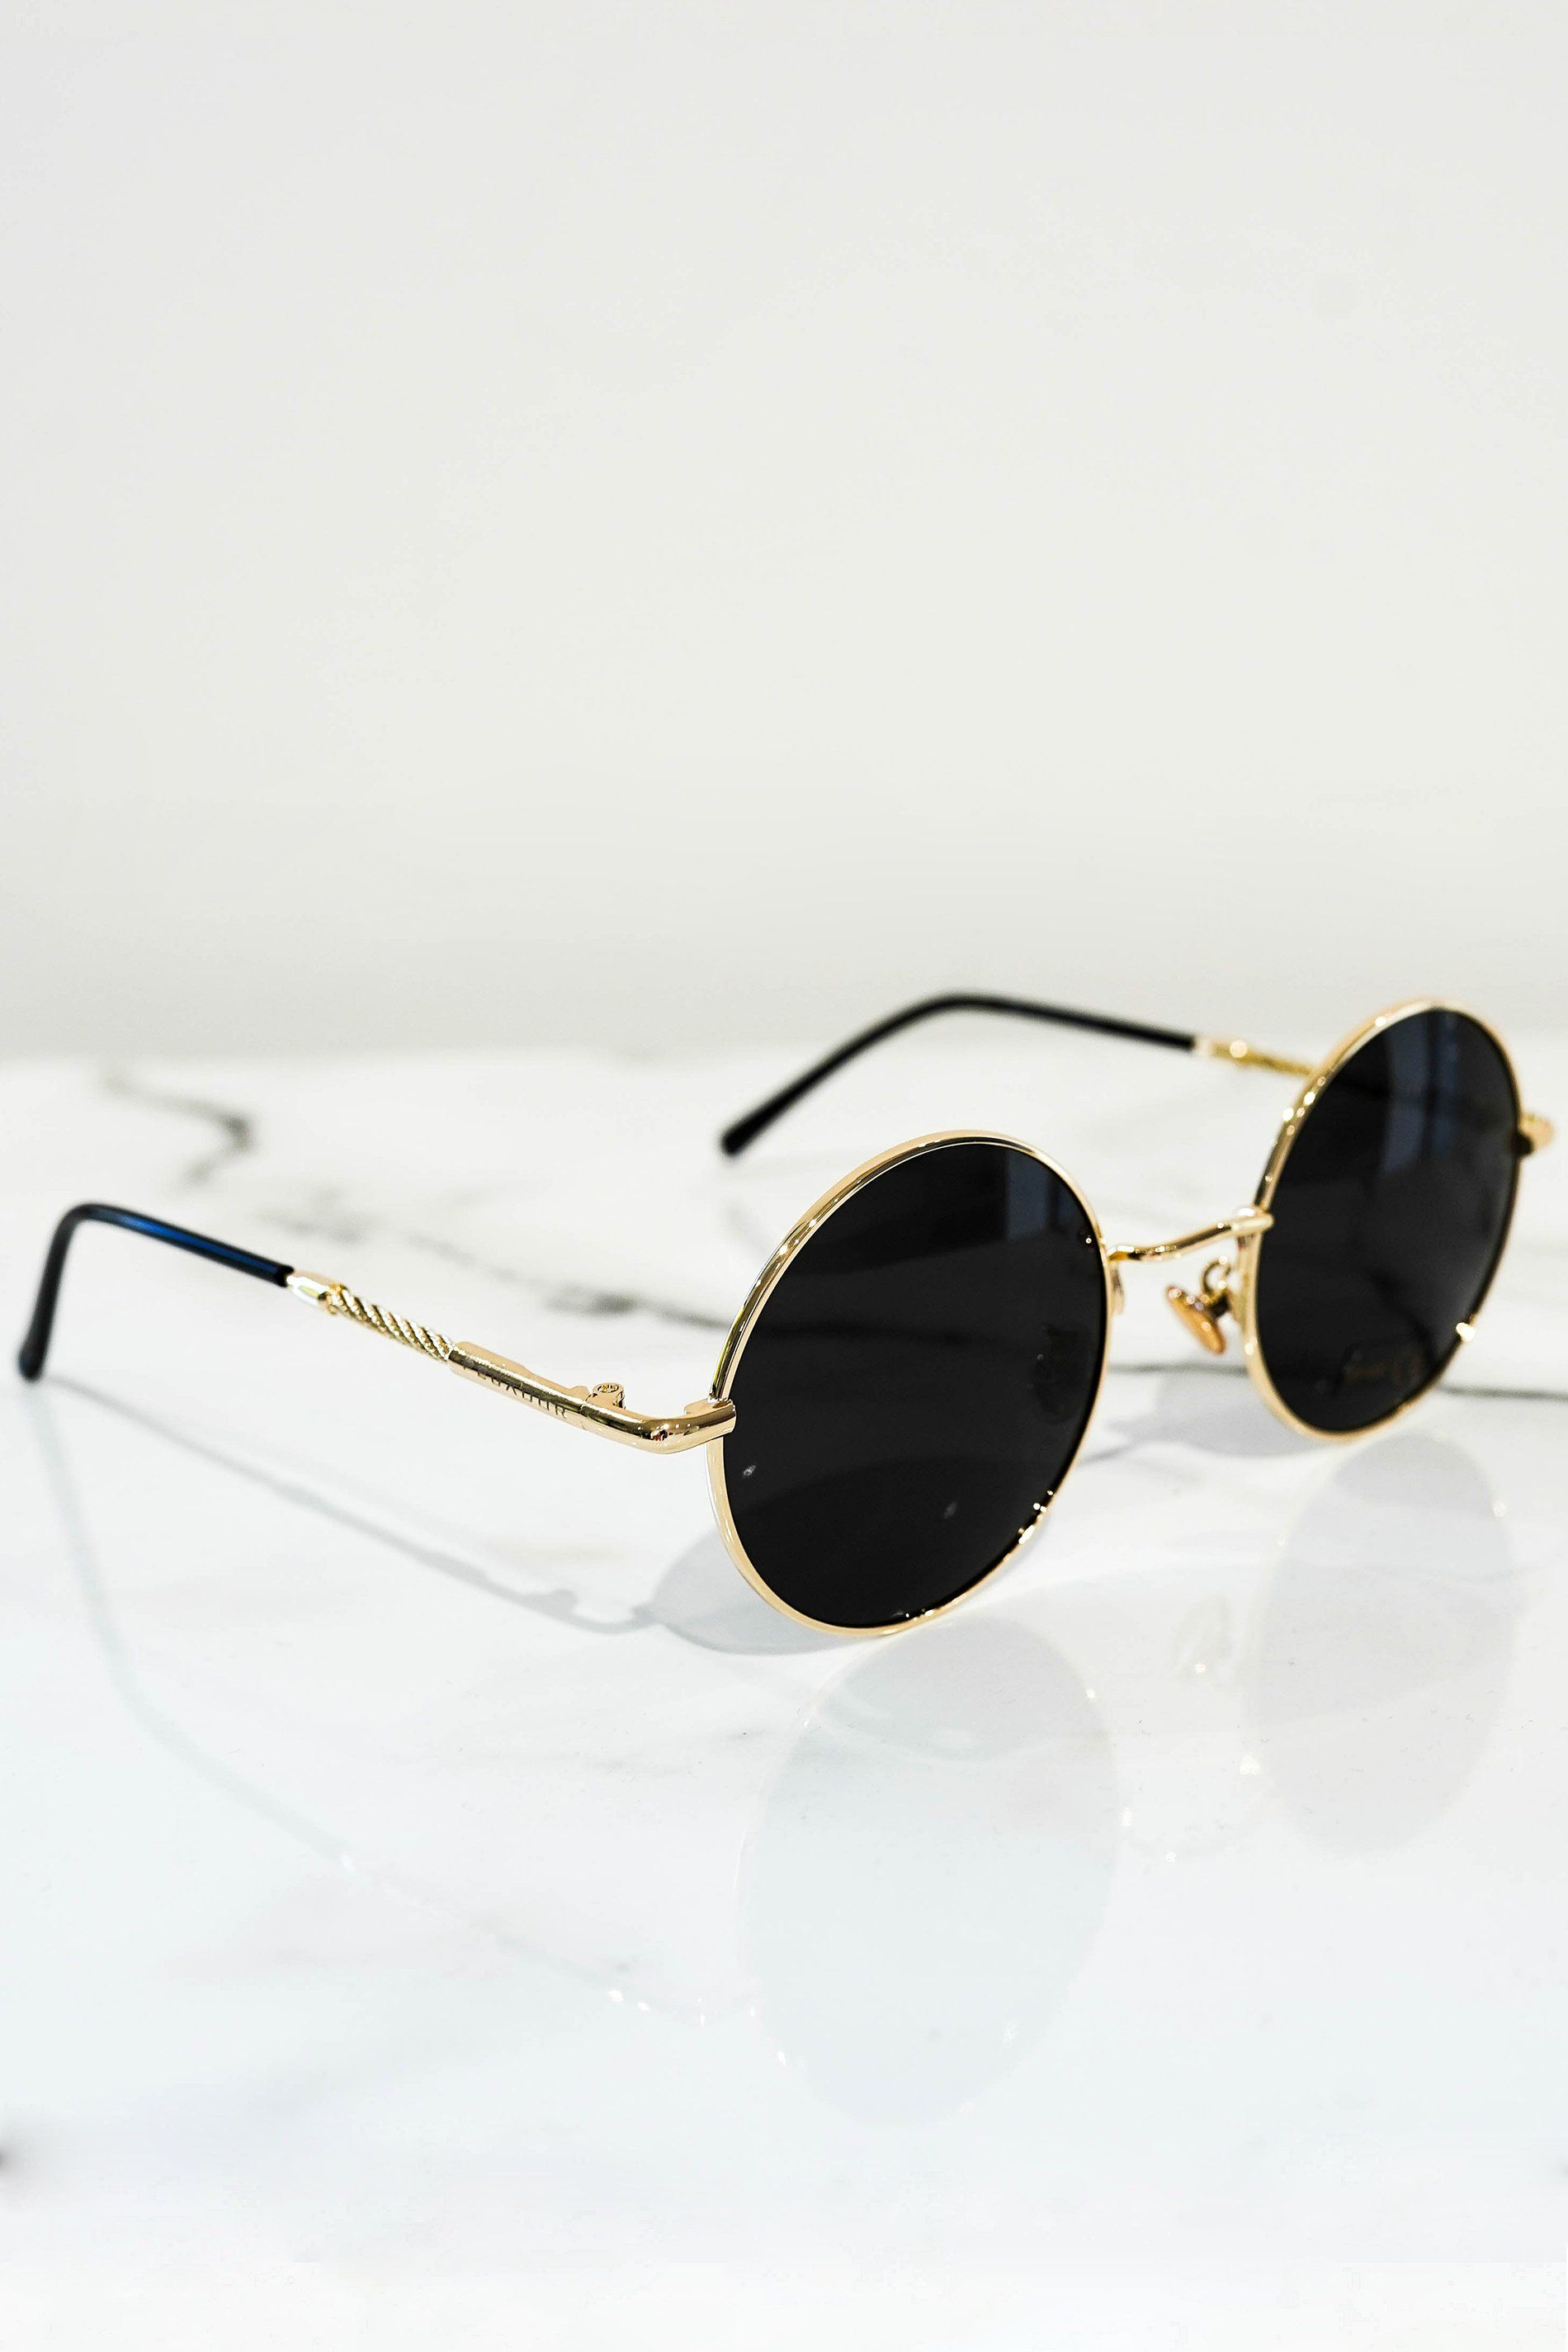 round sunglasses gold with dark lens